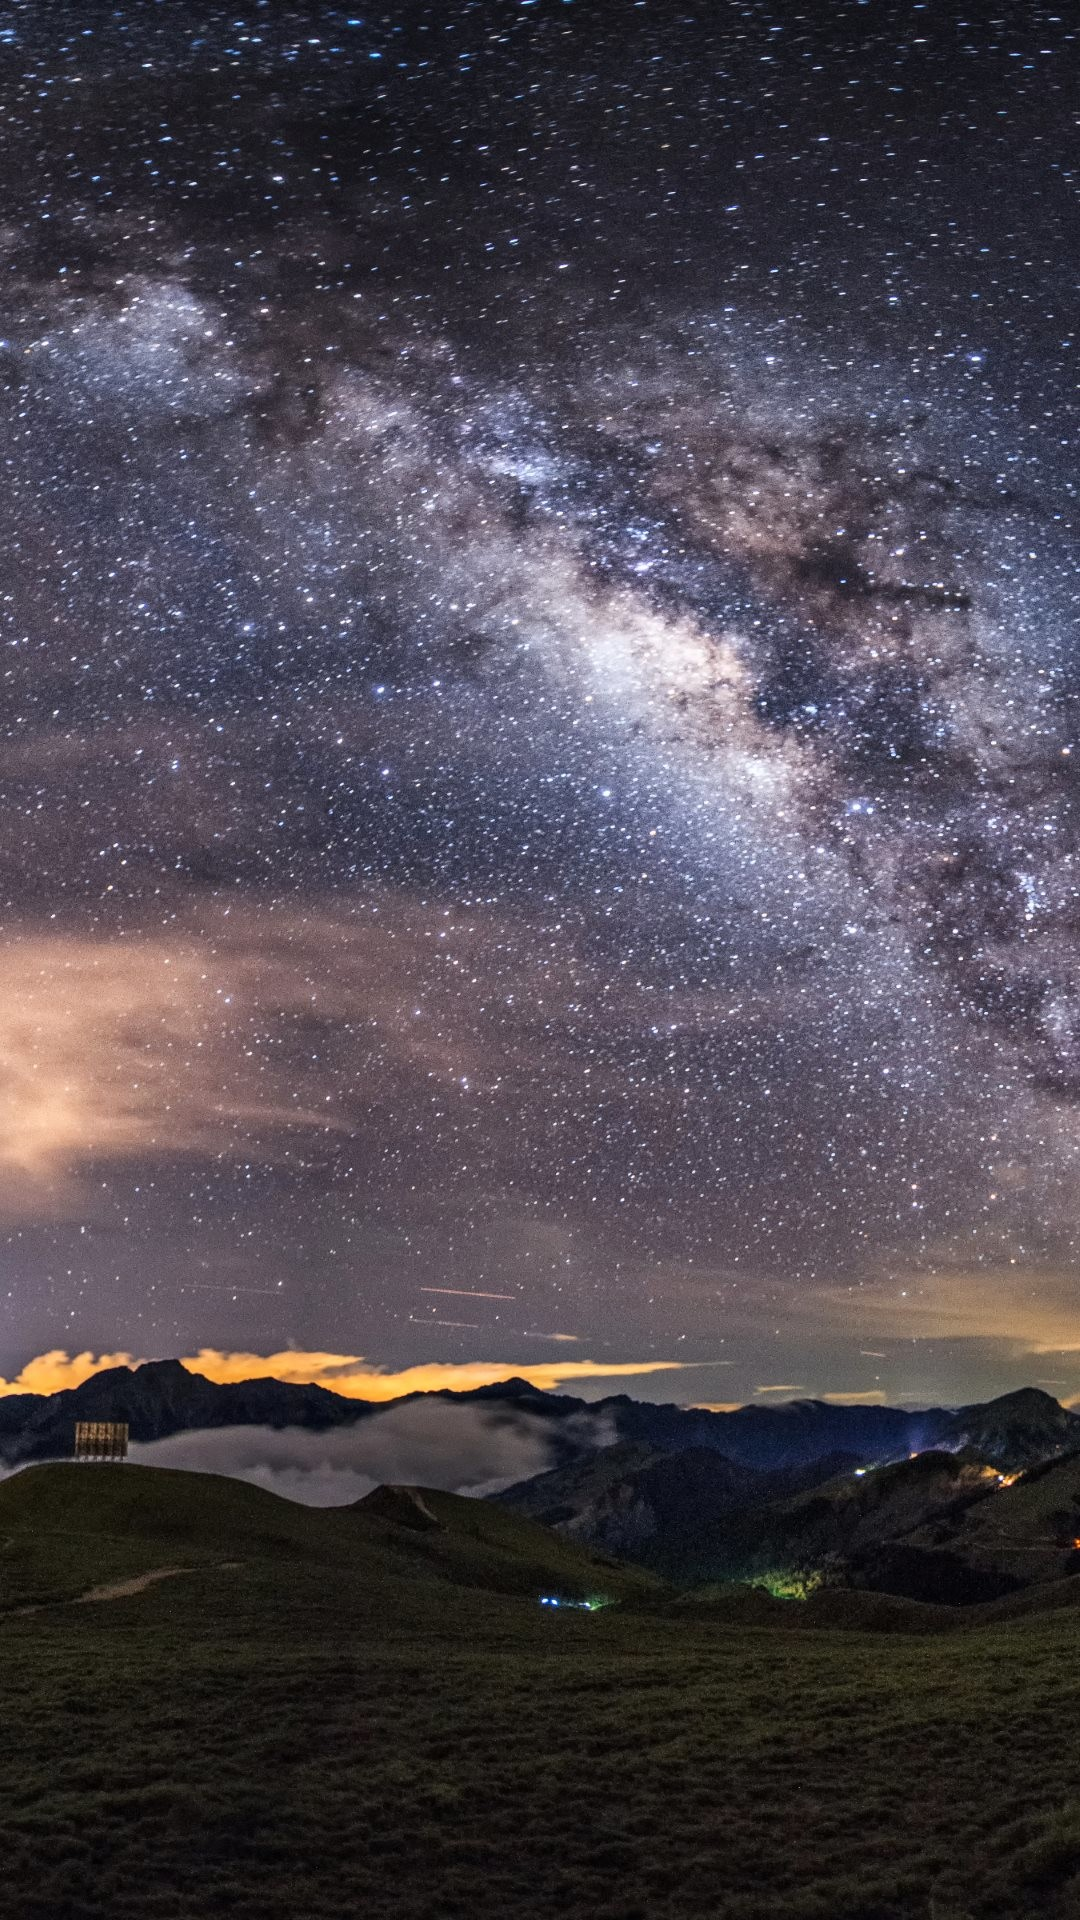 Milky Way on the Night Sky HD Wallpapers. 4K Wallpapers